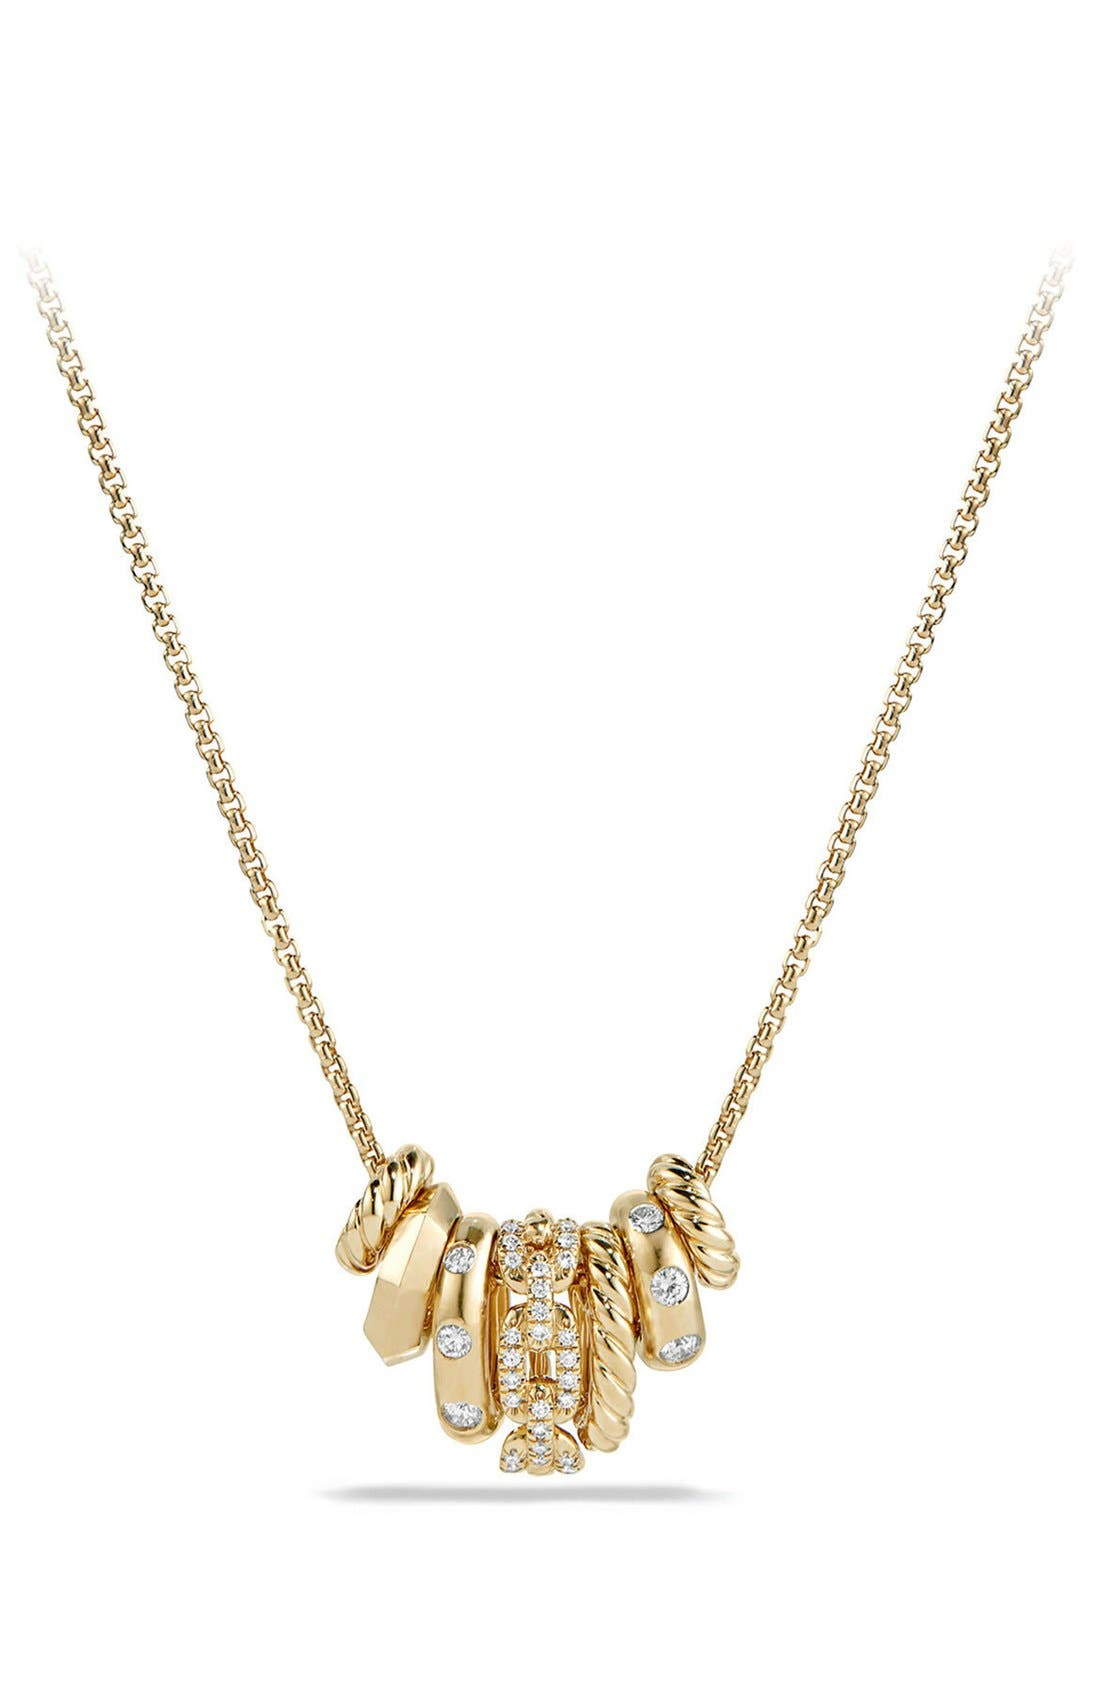 'Stax' Pendant Necklace with Diamonds in 18K Gold,                             Main thumbnail 1, color,                             Yellow Gold